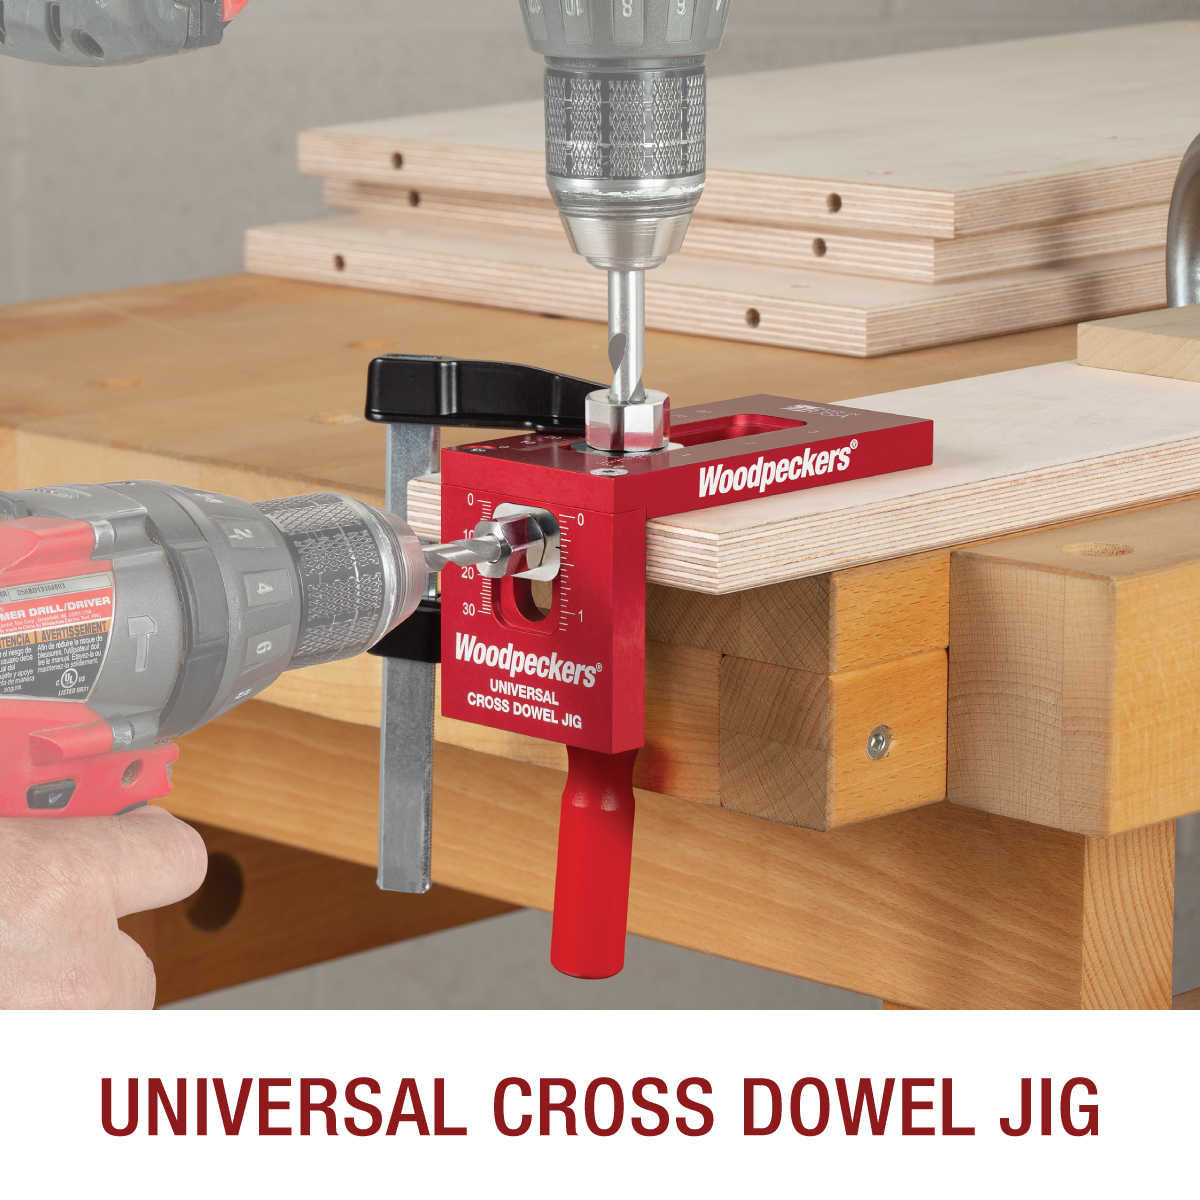 universal cross dowel